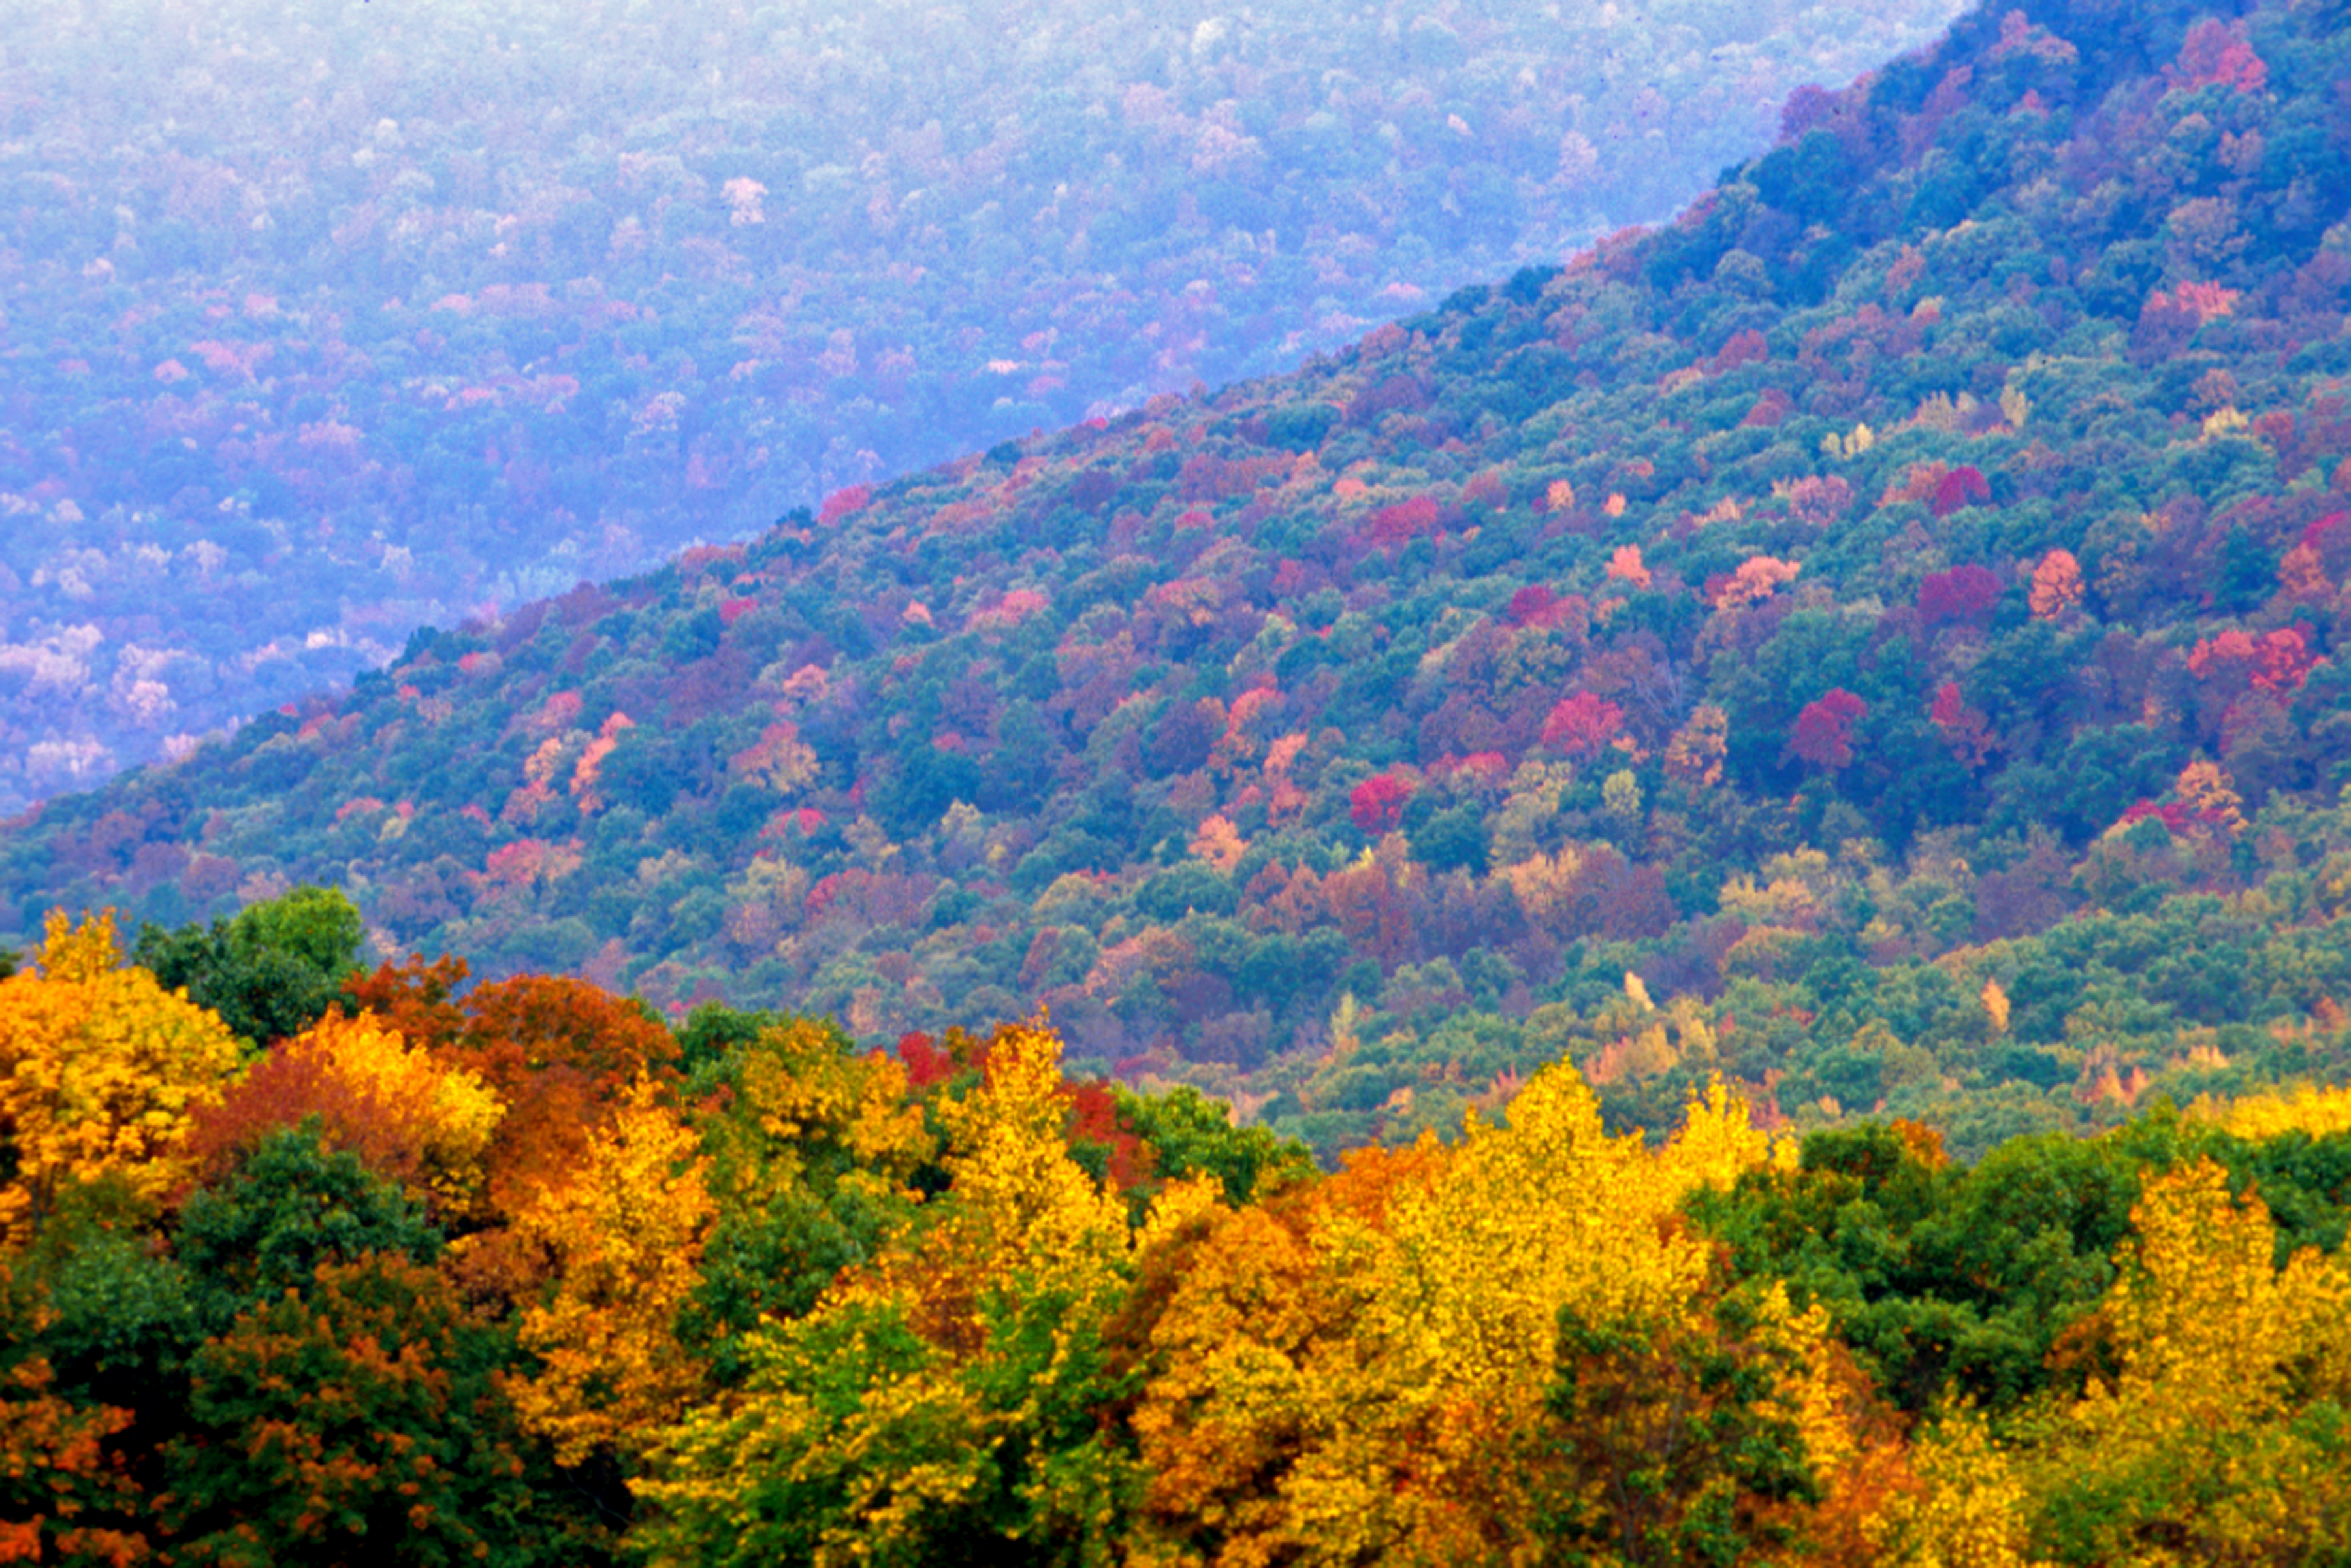 The Ouachita National Forest